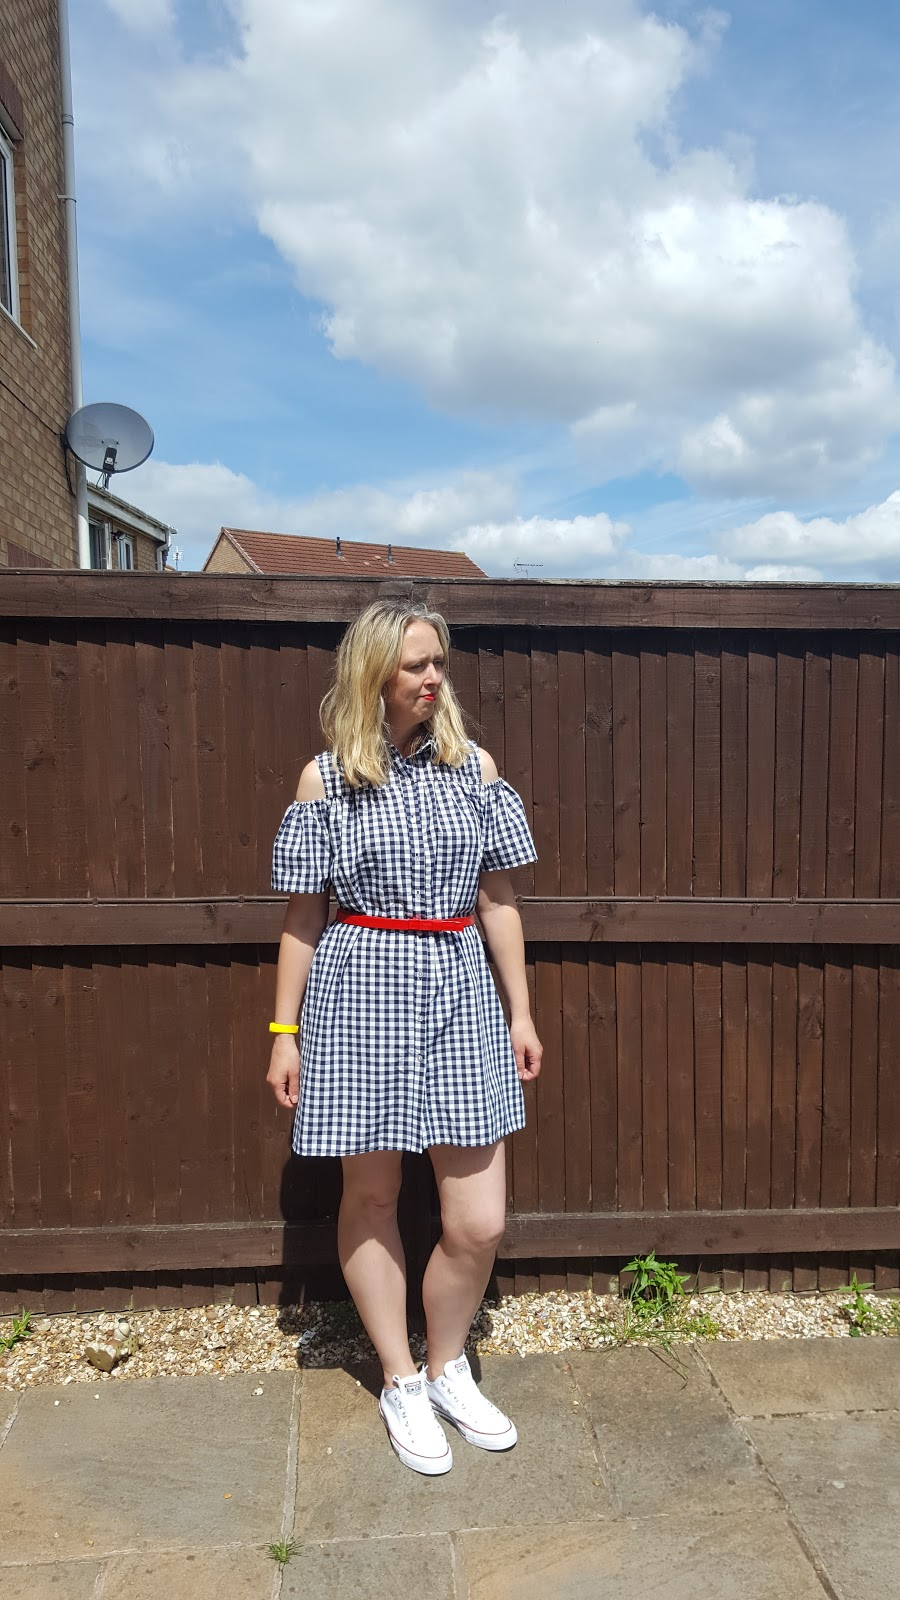 Gingham Dress Trend: Are You A Fan?